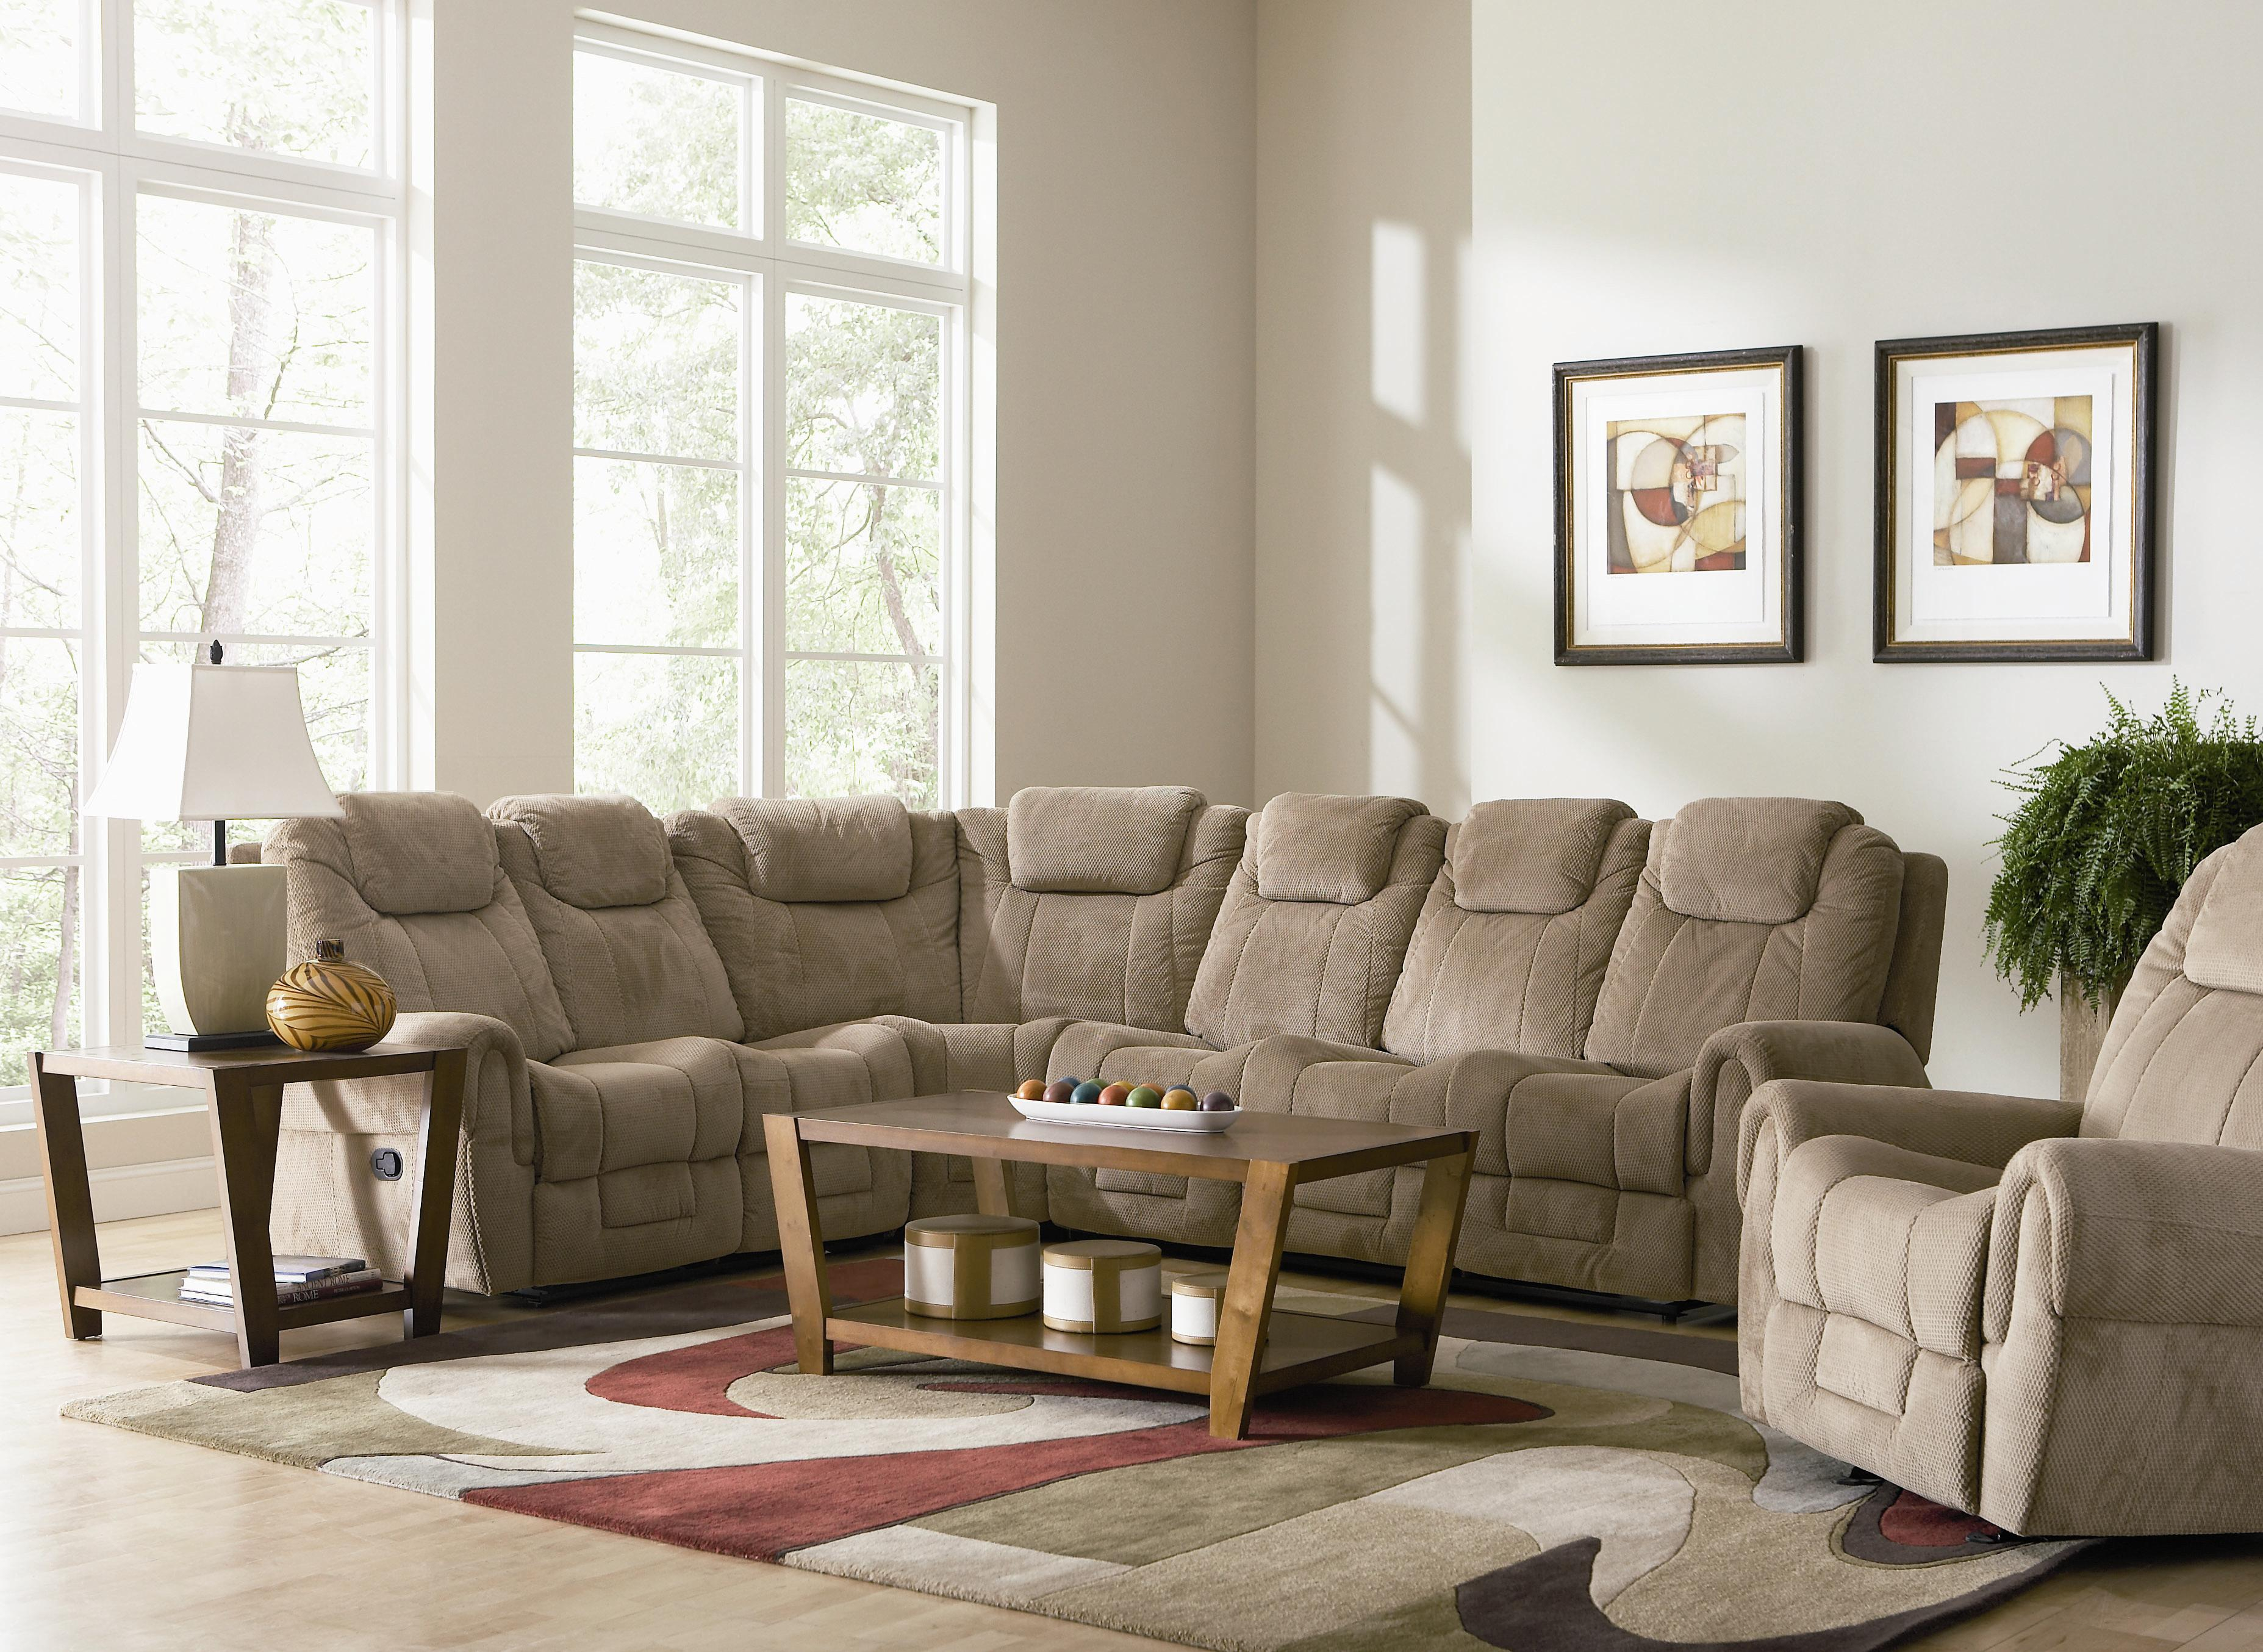 Furniture Cheap Sectional Sofas Under 300 For Simple Your Sofas with regard to Living Room Sets Under 600